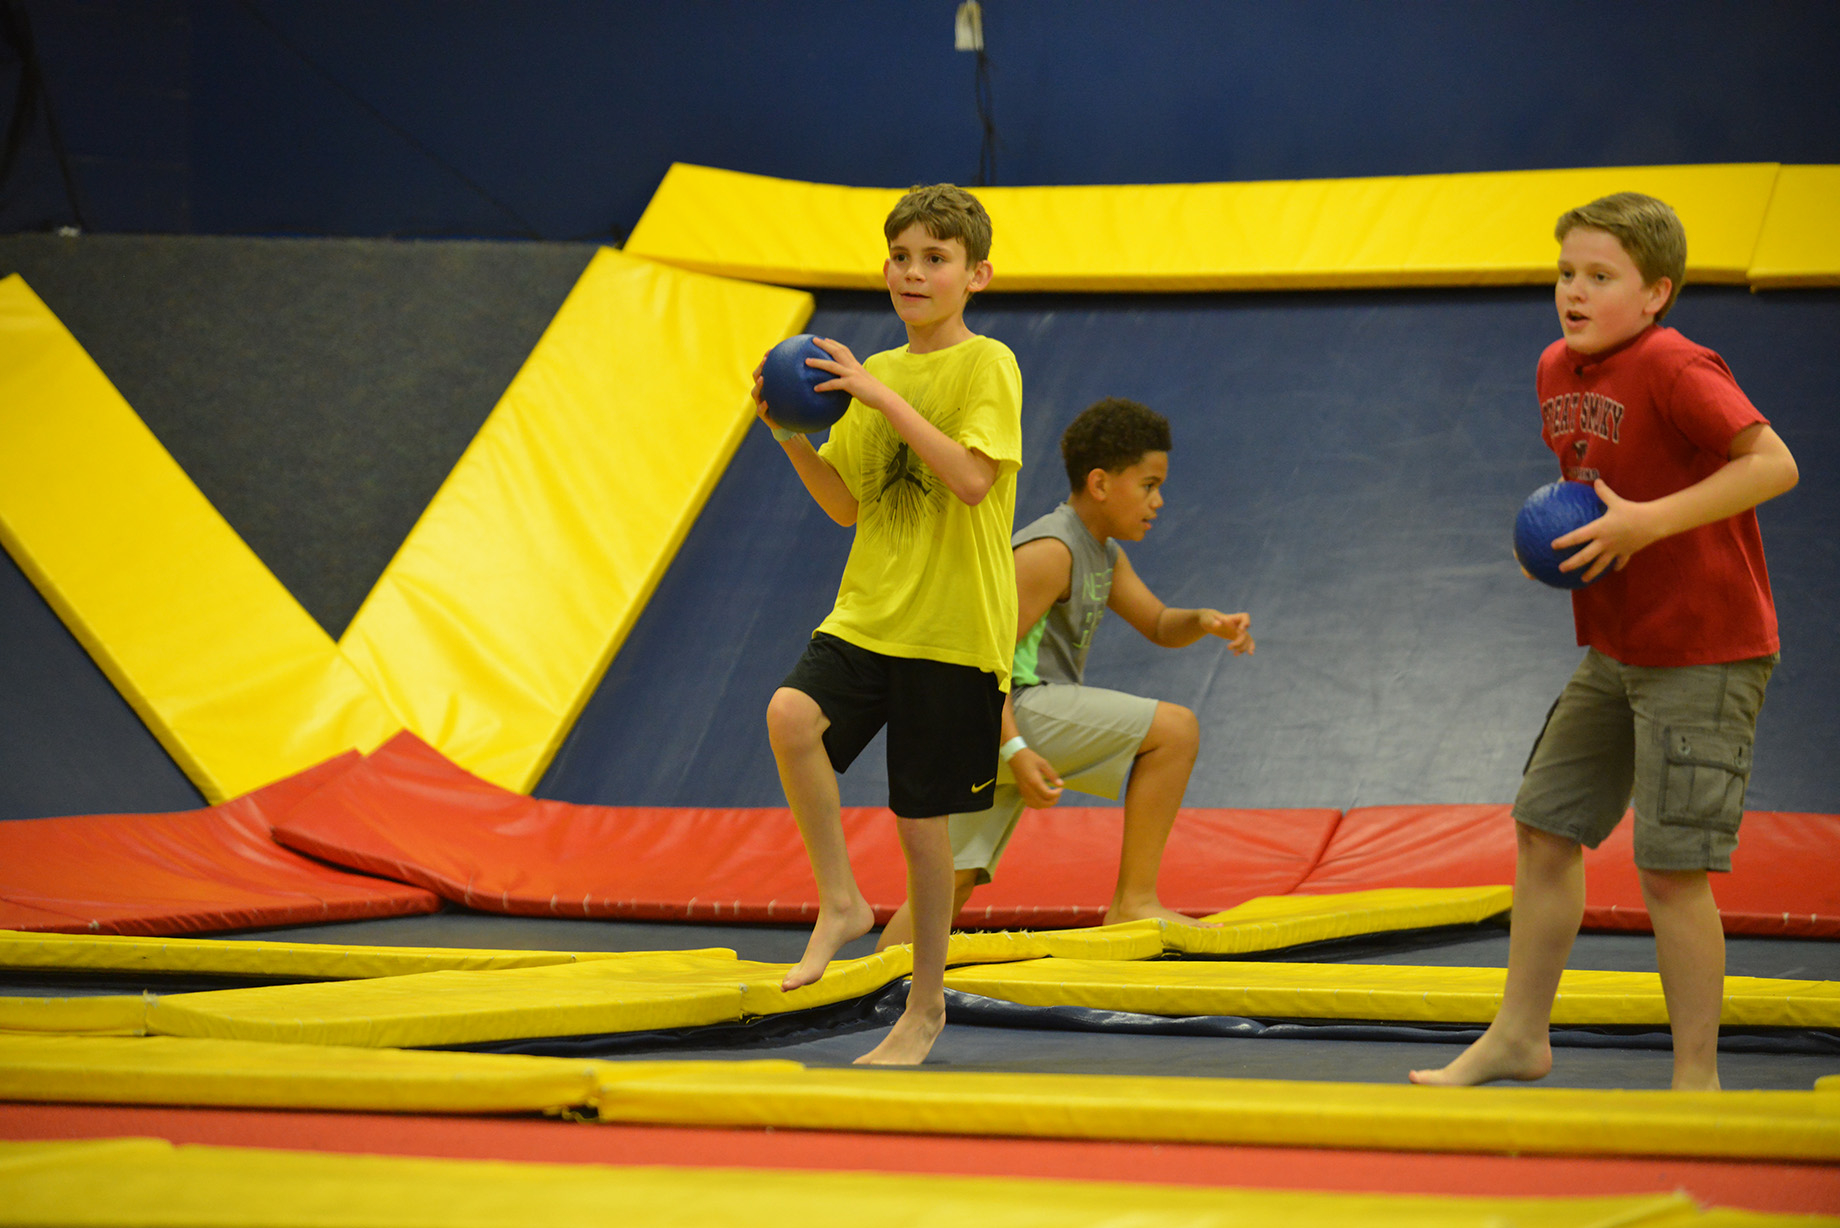 Trampoline Birthday Party | Sky High Sports - Charlotte, NC